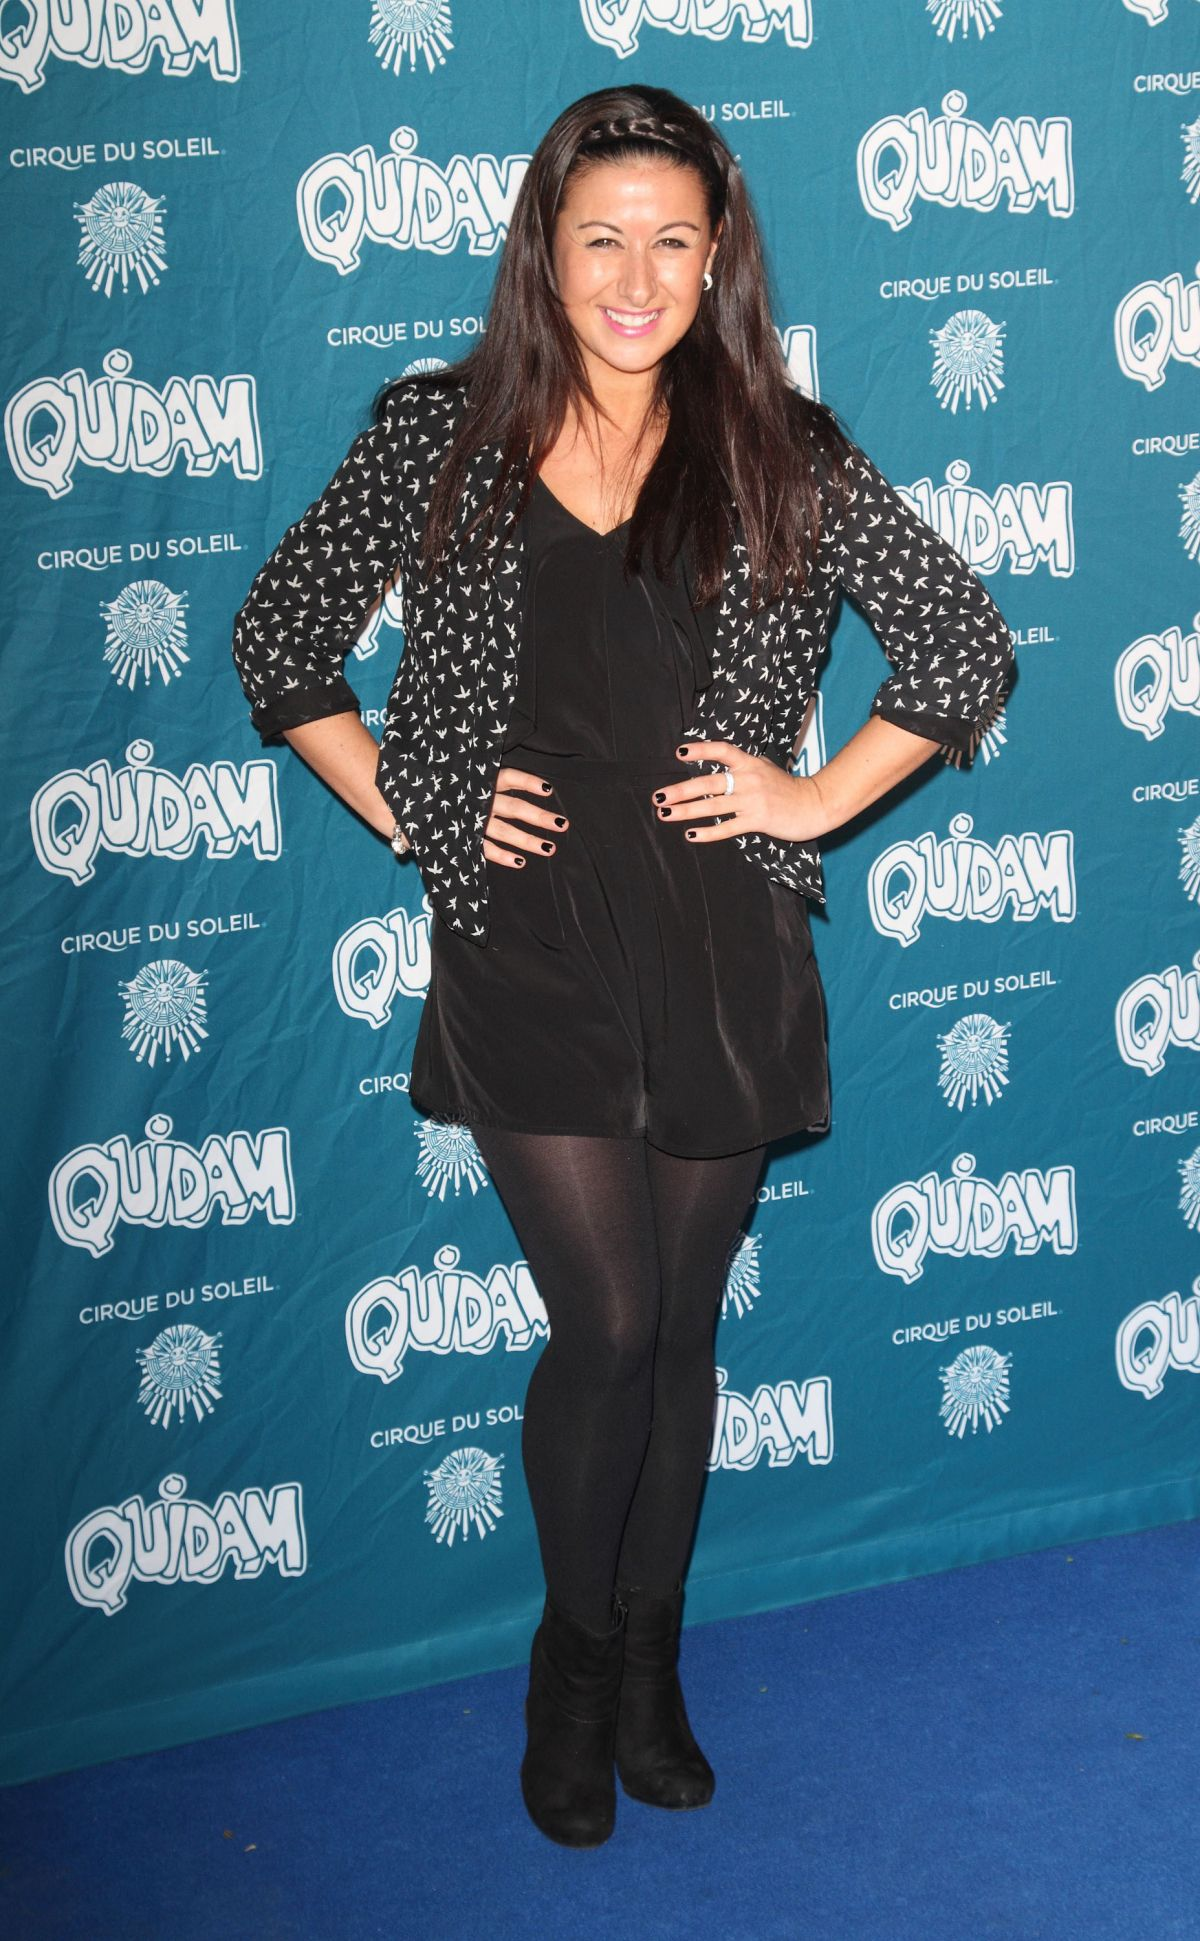 HAYLEY TAMADDON at Cirque du Soleil: Quidam Opening Night in London